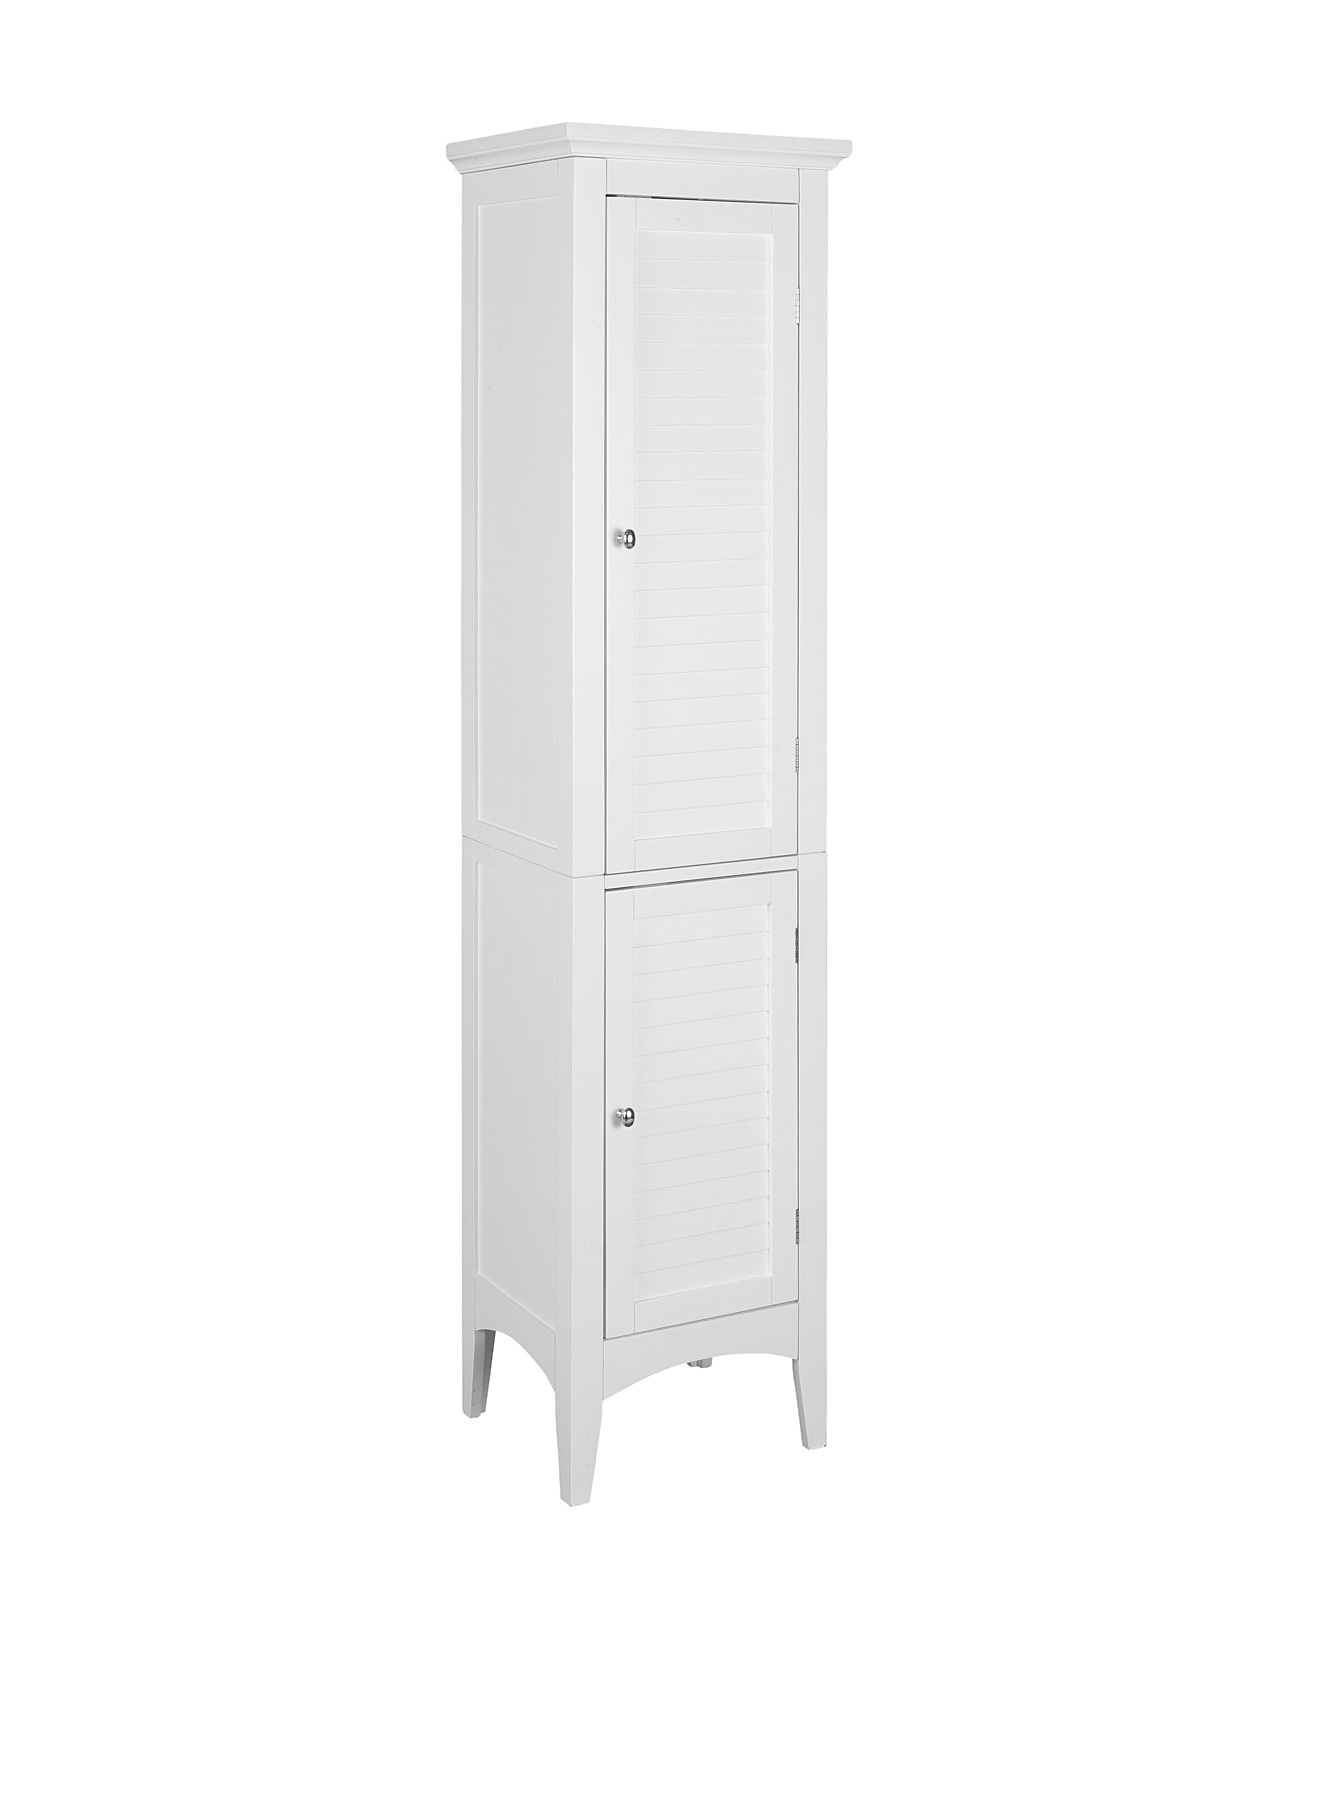 Elegant Home Fashions Sicily Linen Tower with 2 Shutter Doors, White by Elegant Home Fashions